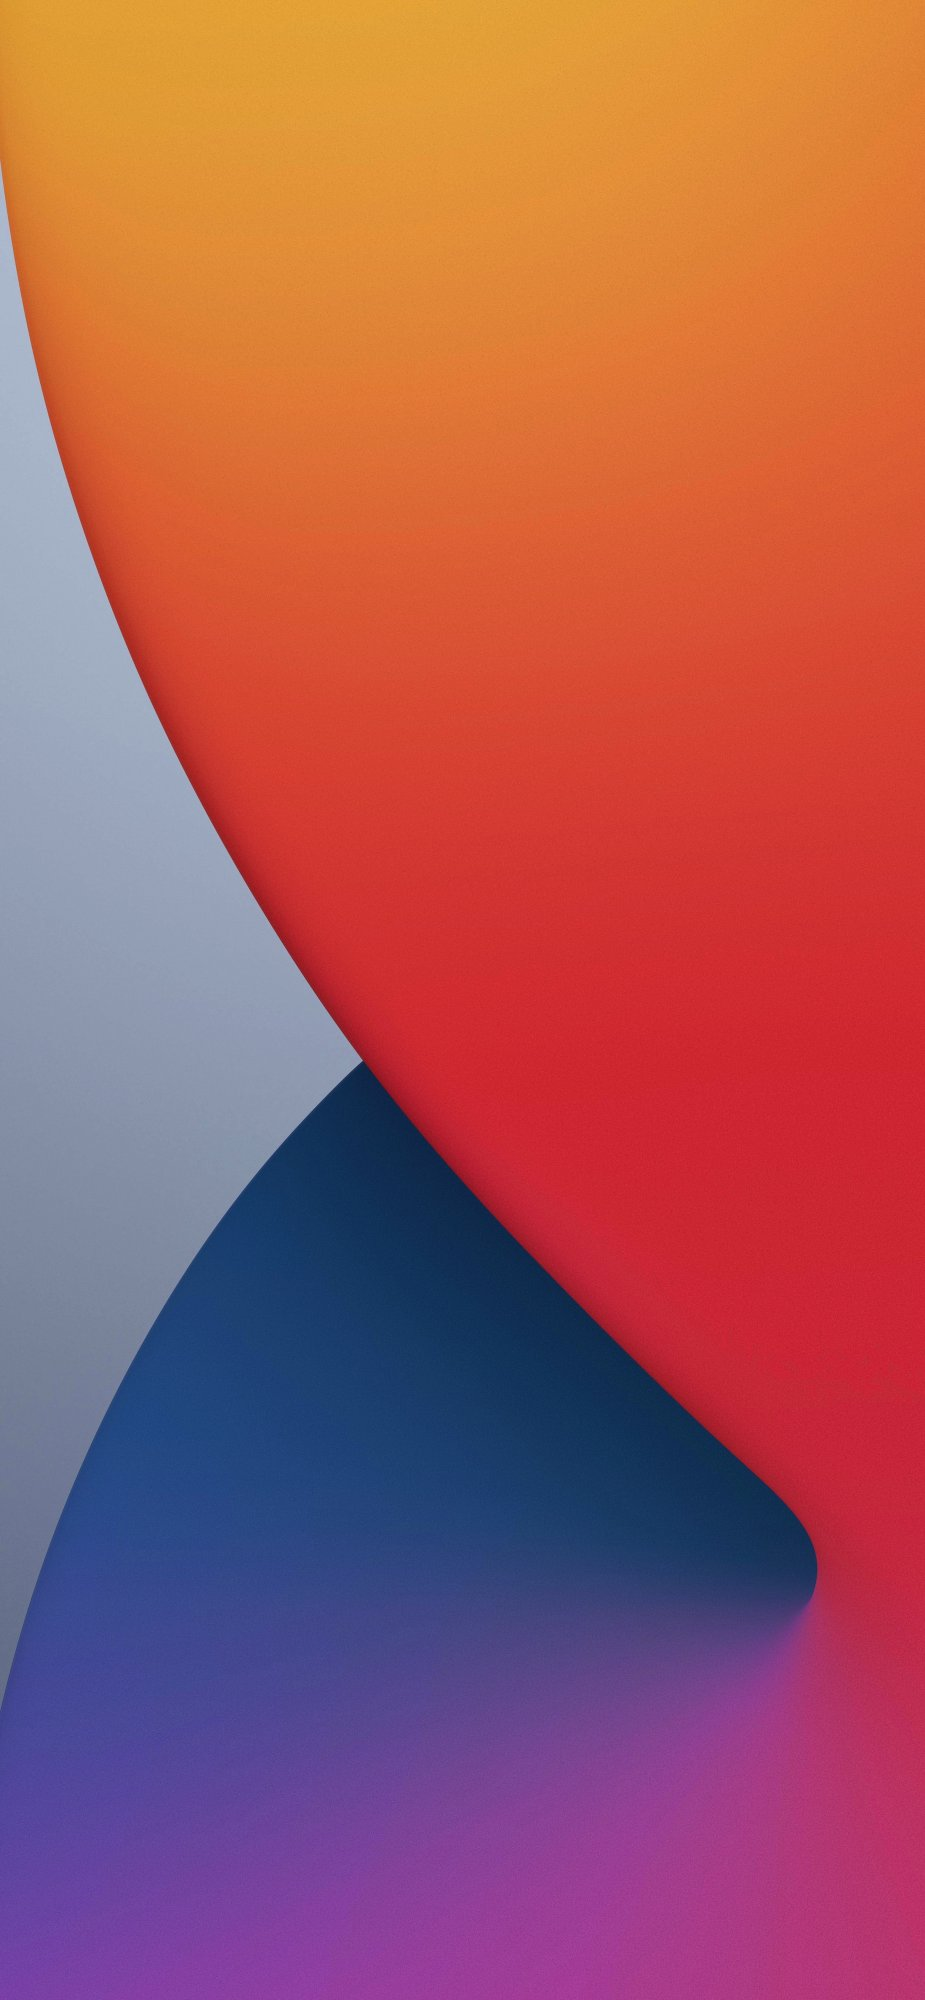 Ios 14 Wallpaper Macrumors Forums